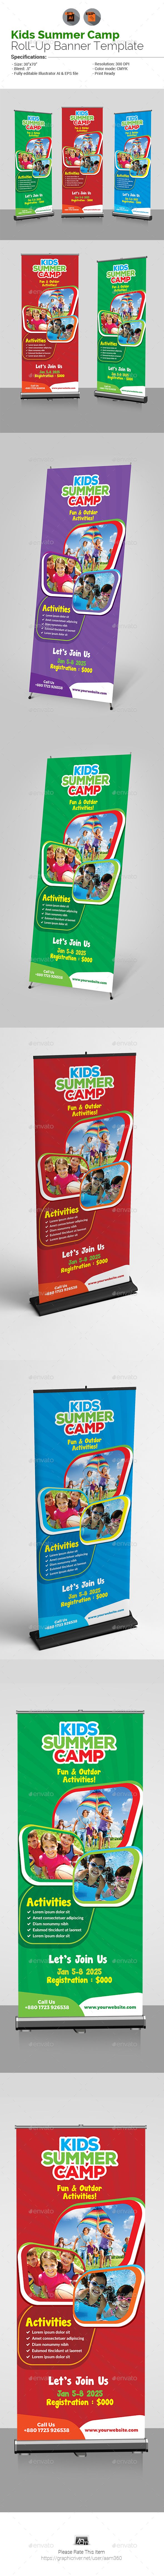 """Kids Summer Camp Roll Up Banner by aam360 Similar Templates:INFORMATIONS FOR THIS ROLL-UP BANNER:FEATURES:Size: 30""""x70""""Bleed: .5""""Four Color VariationsFully editable Illustr"""